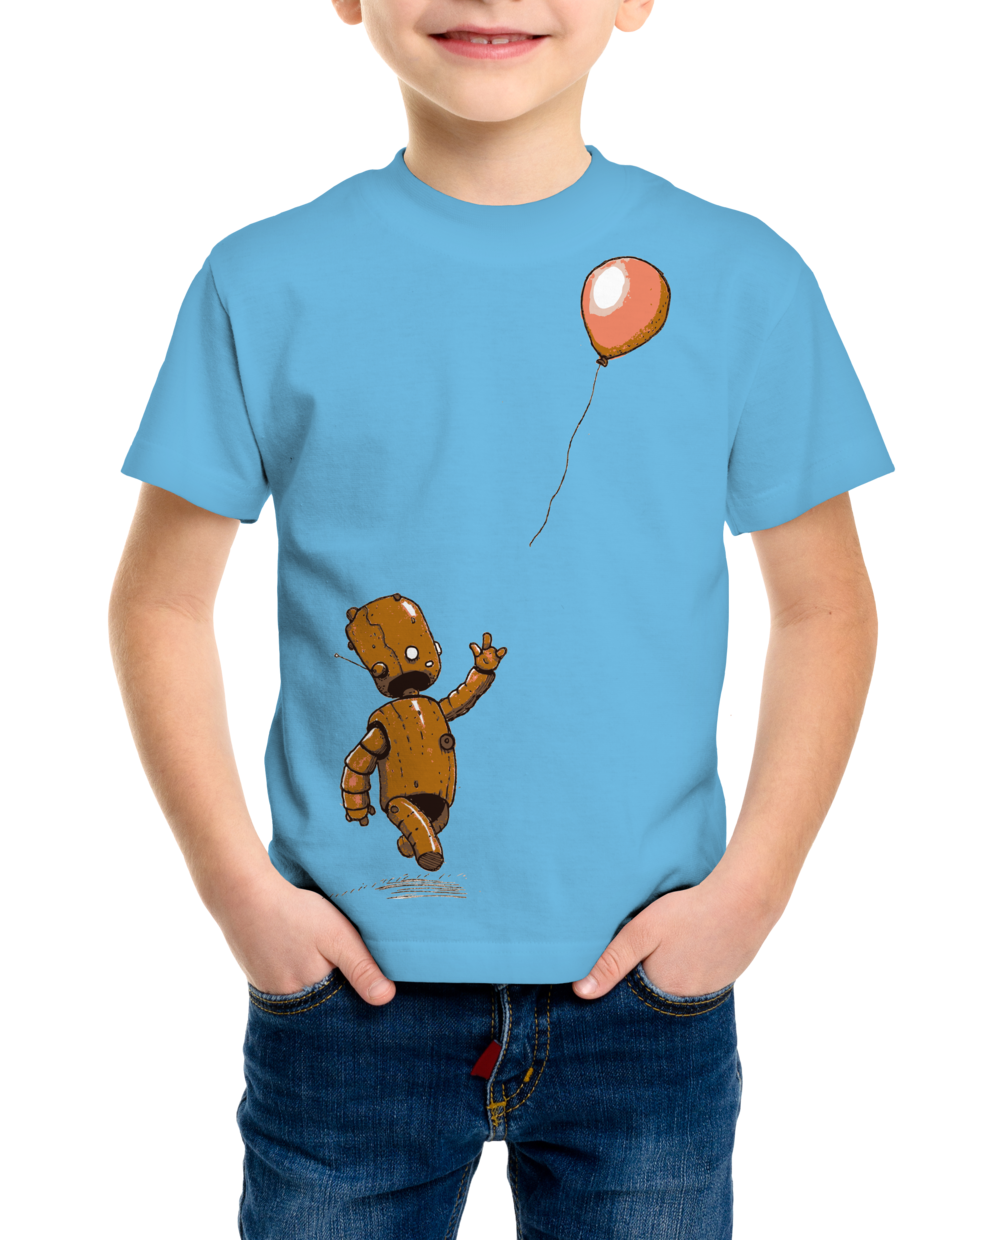 bot-balloon-shirt.png